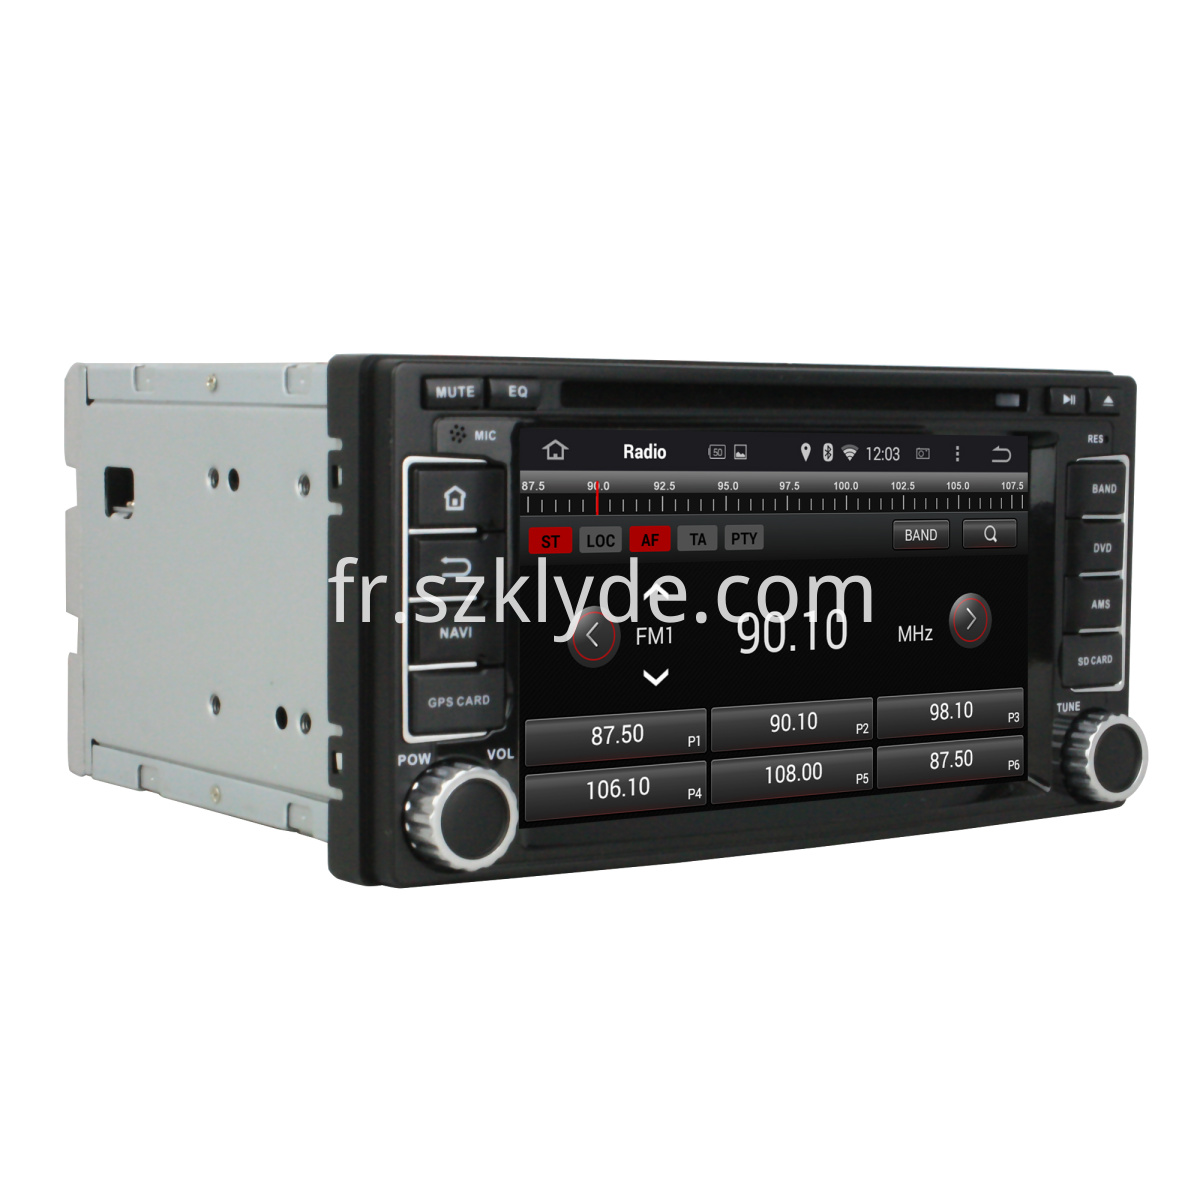 Subaru Forester/Impreza android car DVD player